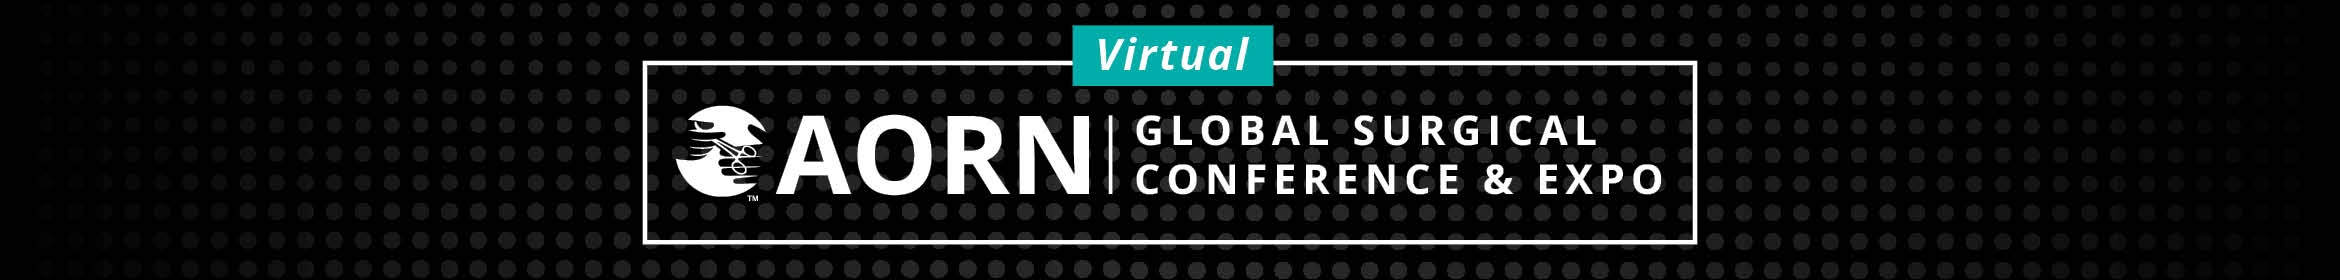 Virtual AORN Global Surgical Conference & Expo Main banner